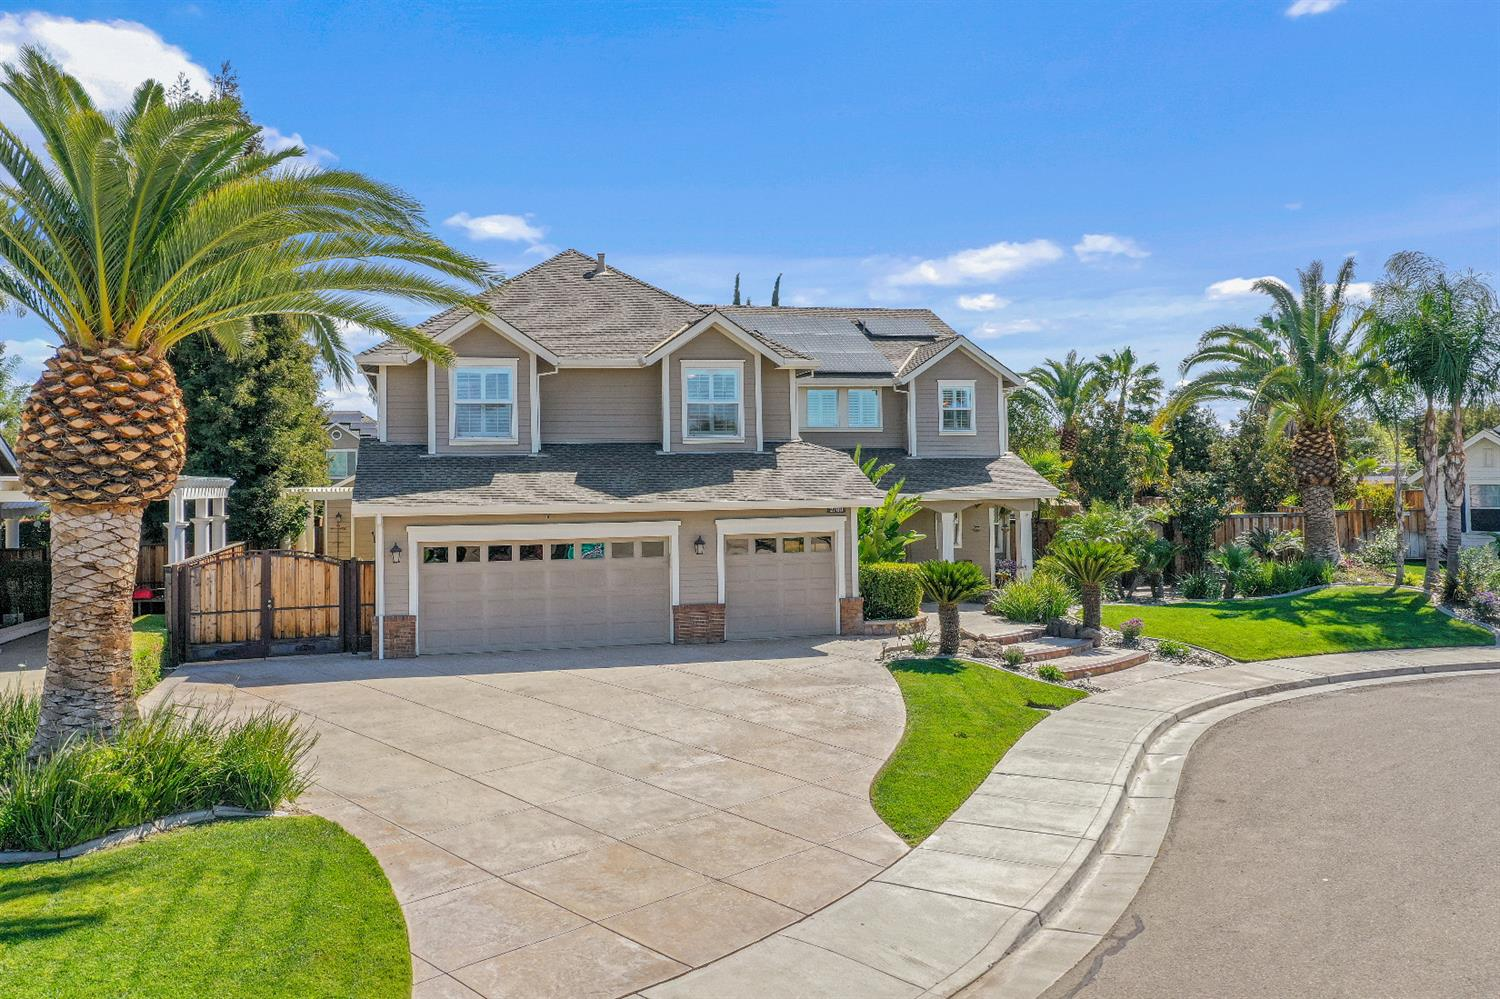 Photo of 2700 Annette Court, Tracy, CA 95304